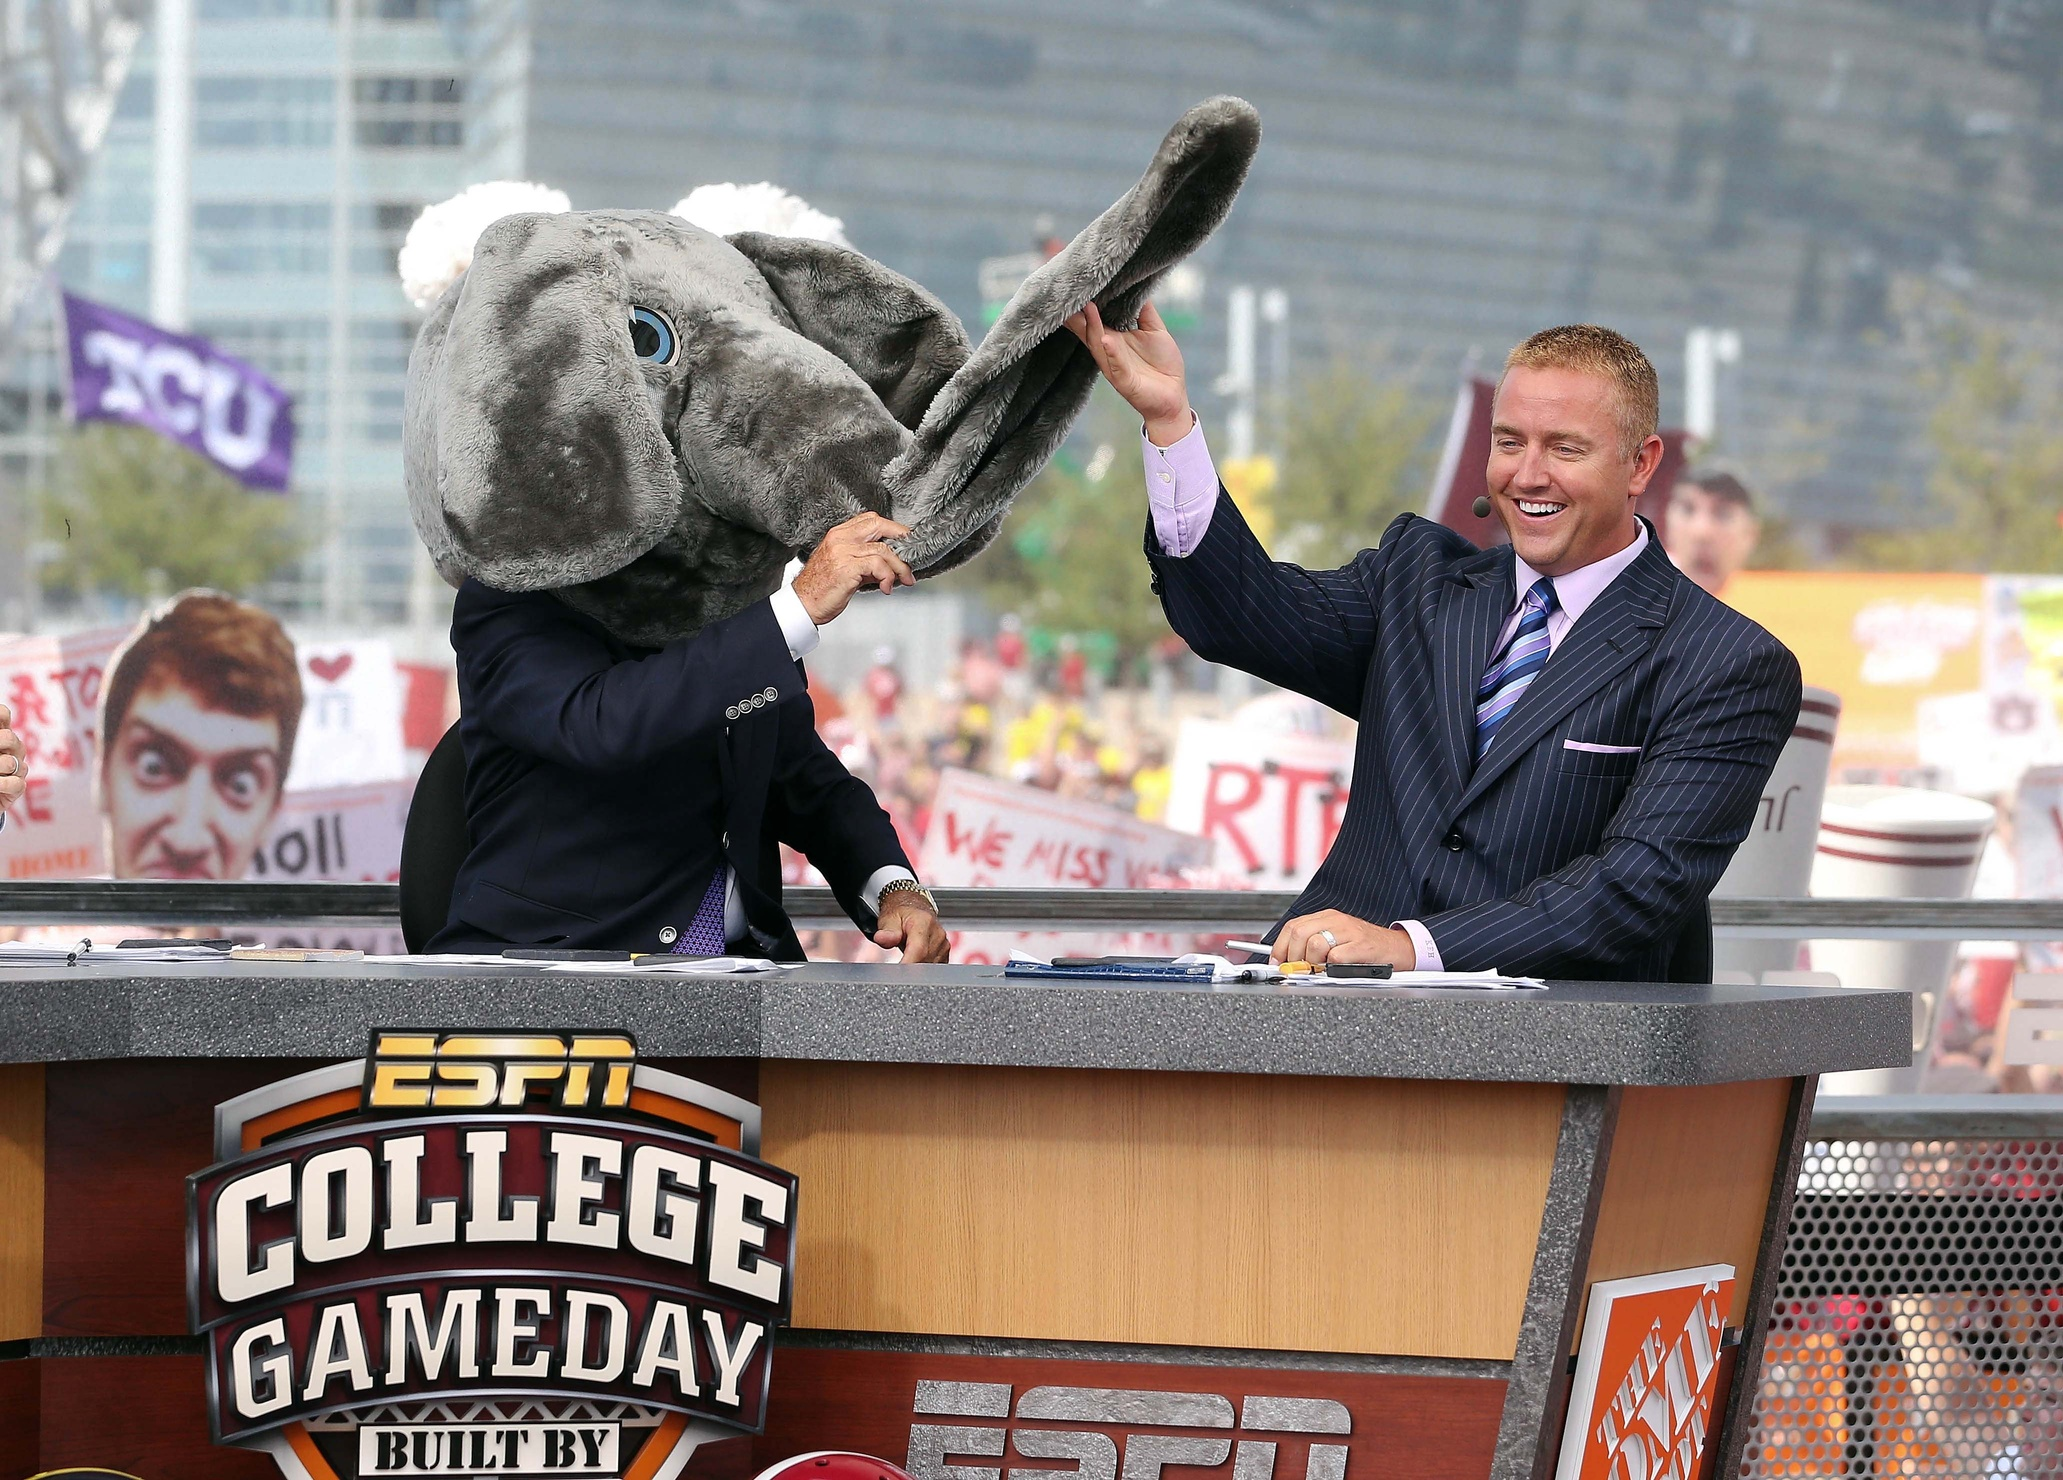 Unleashing elephants on fans is just one way ESPN is keeping fans at home. (Image courtesy: USA Today Sports)